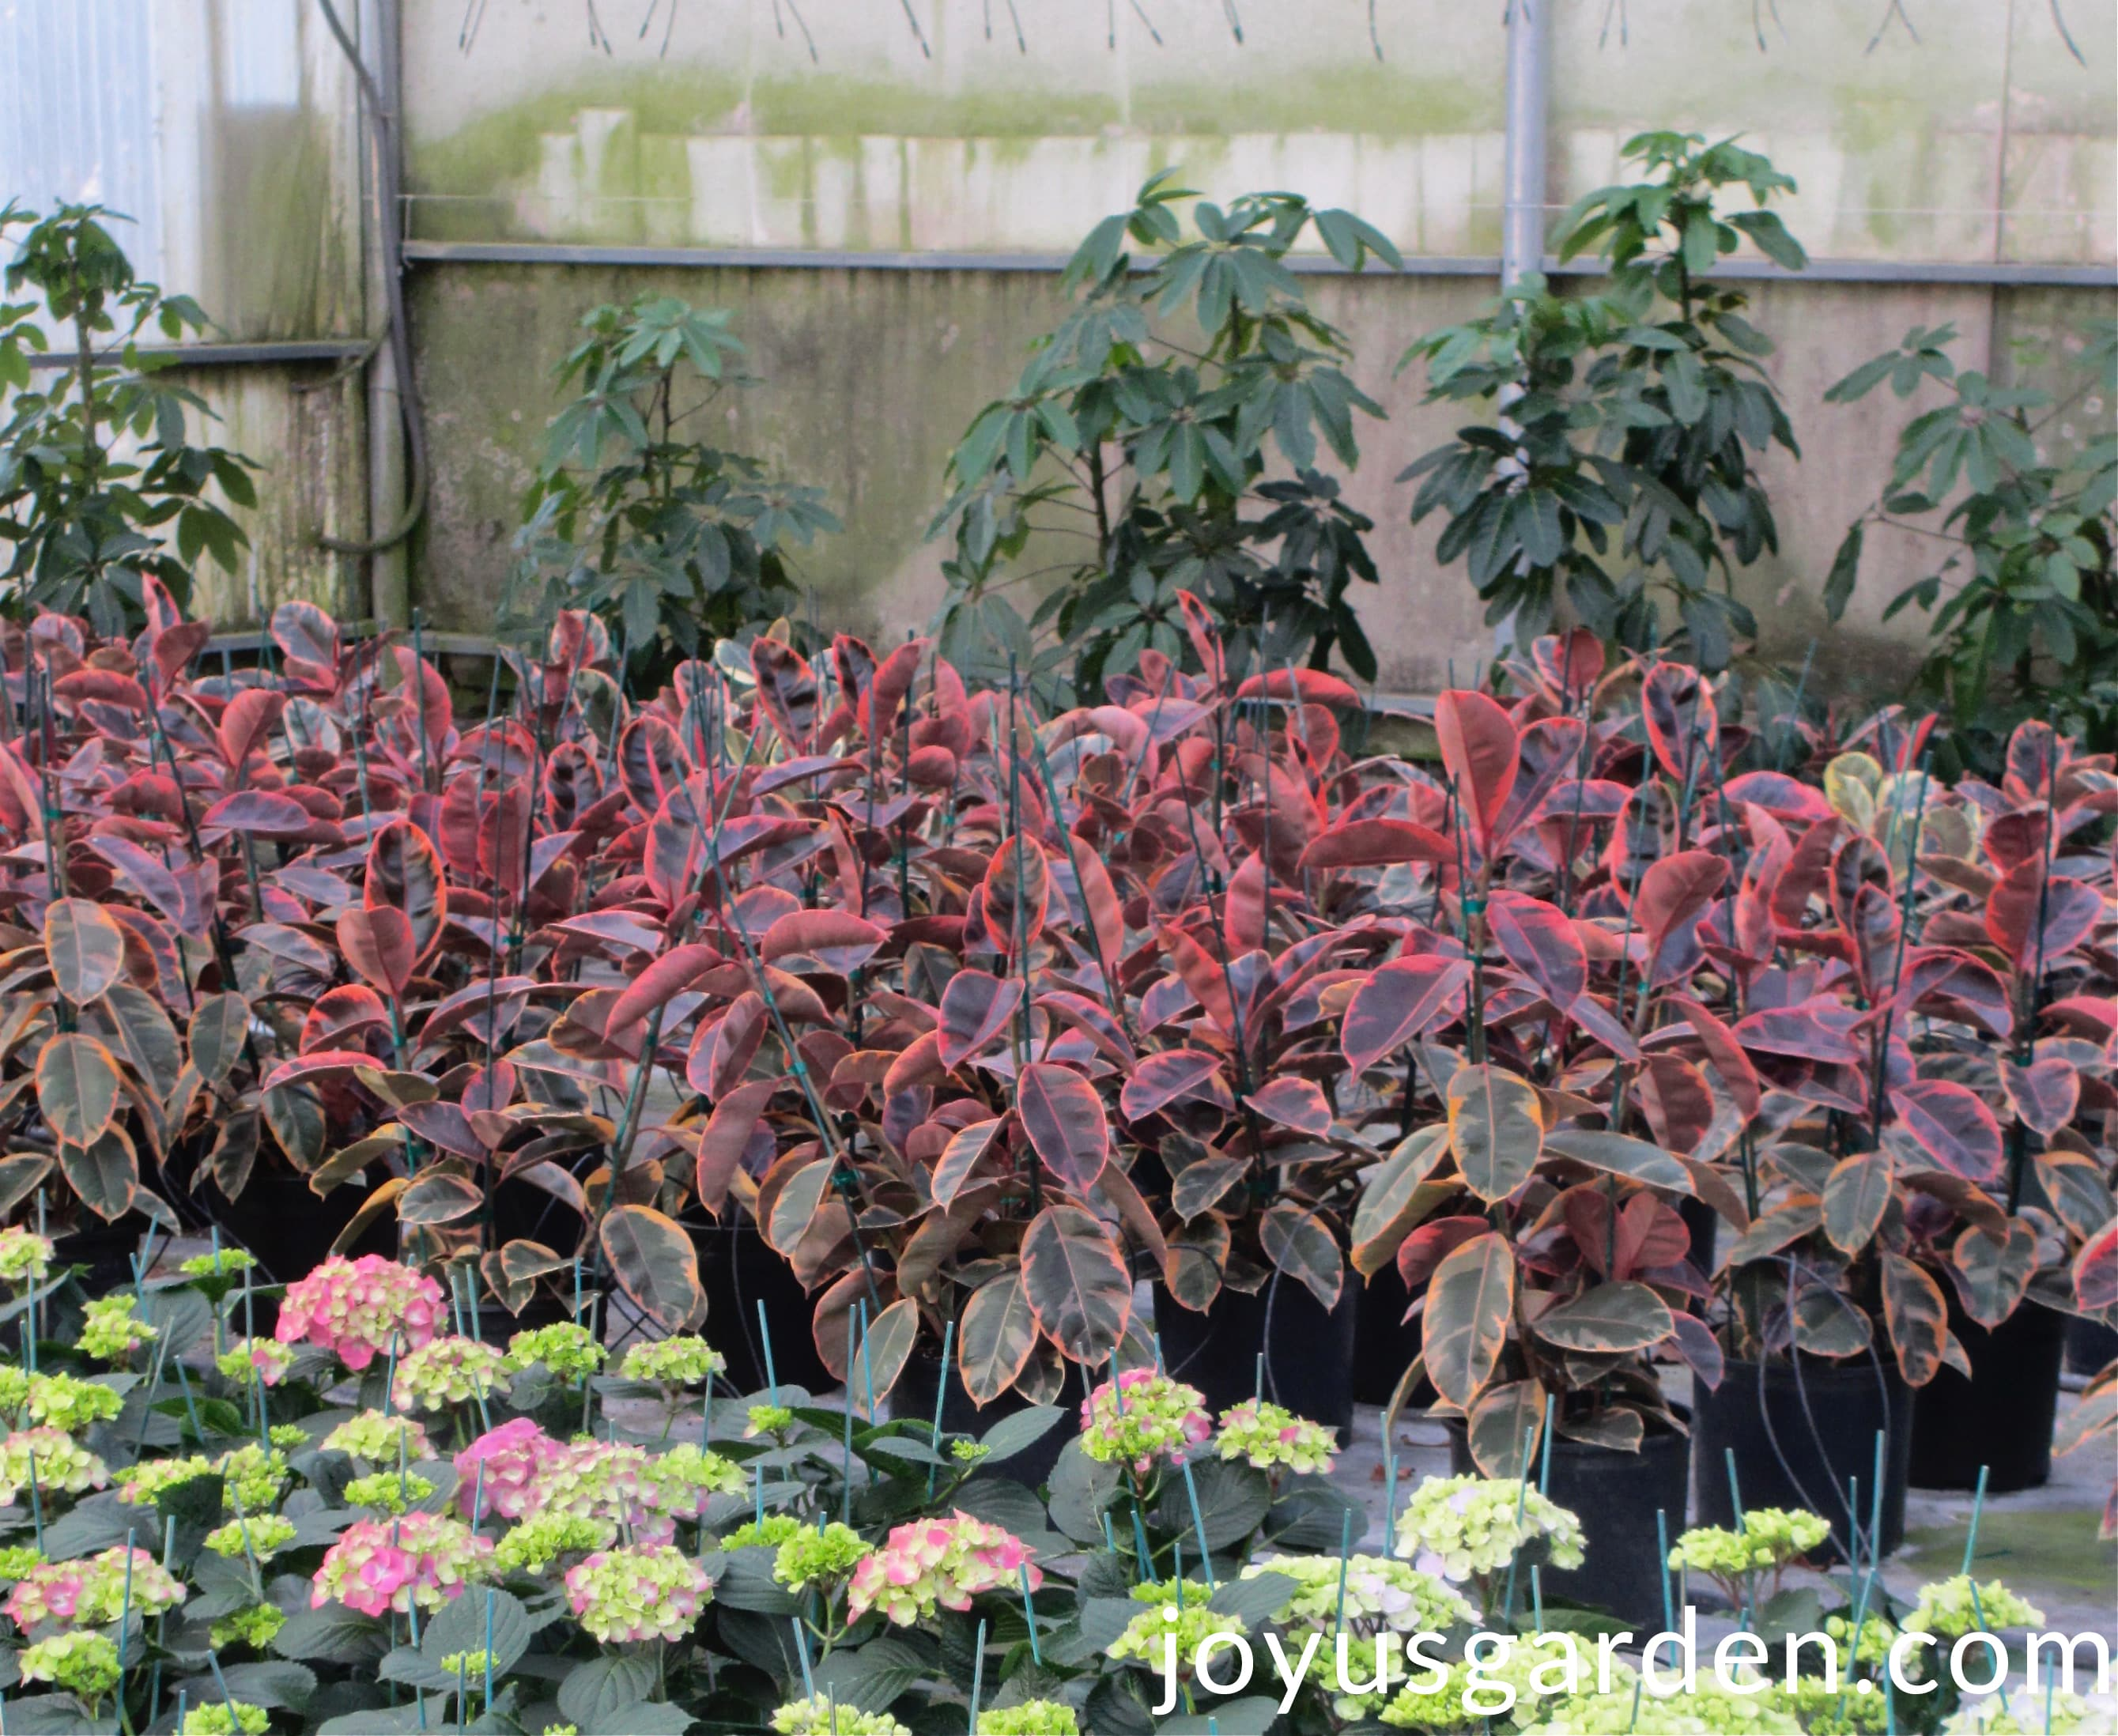 Scheffleras Ruby Rubber Plants Pink Hydrangeas Grow In A Greenhouse